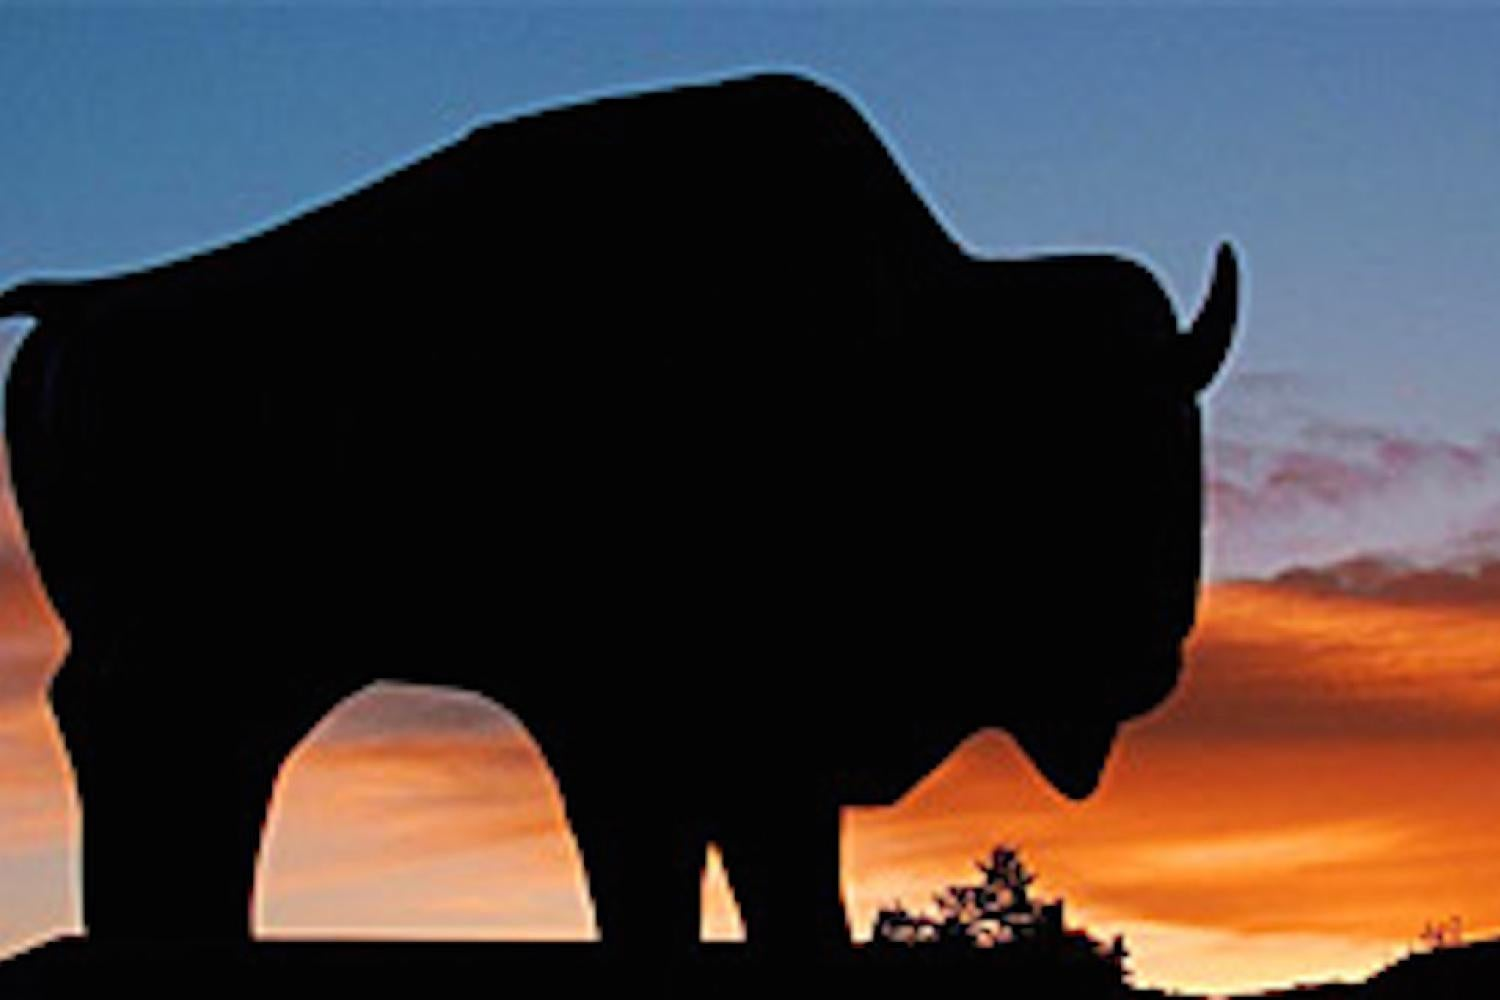 Bison statue at sunset